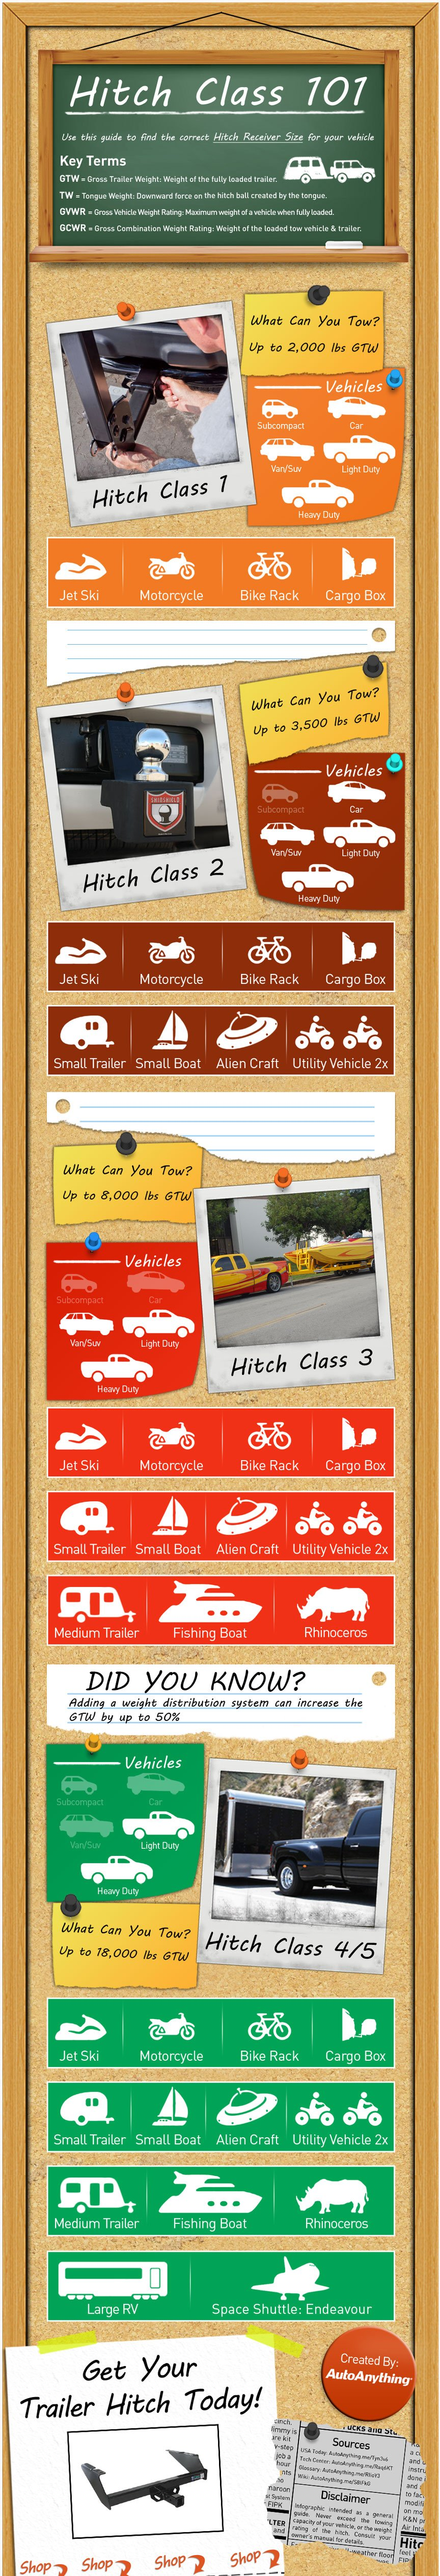 Trailer Hitch Class Infographic